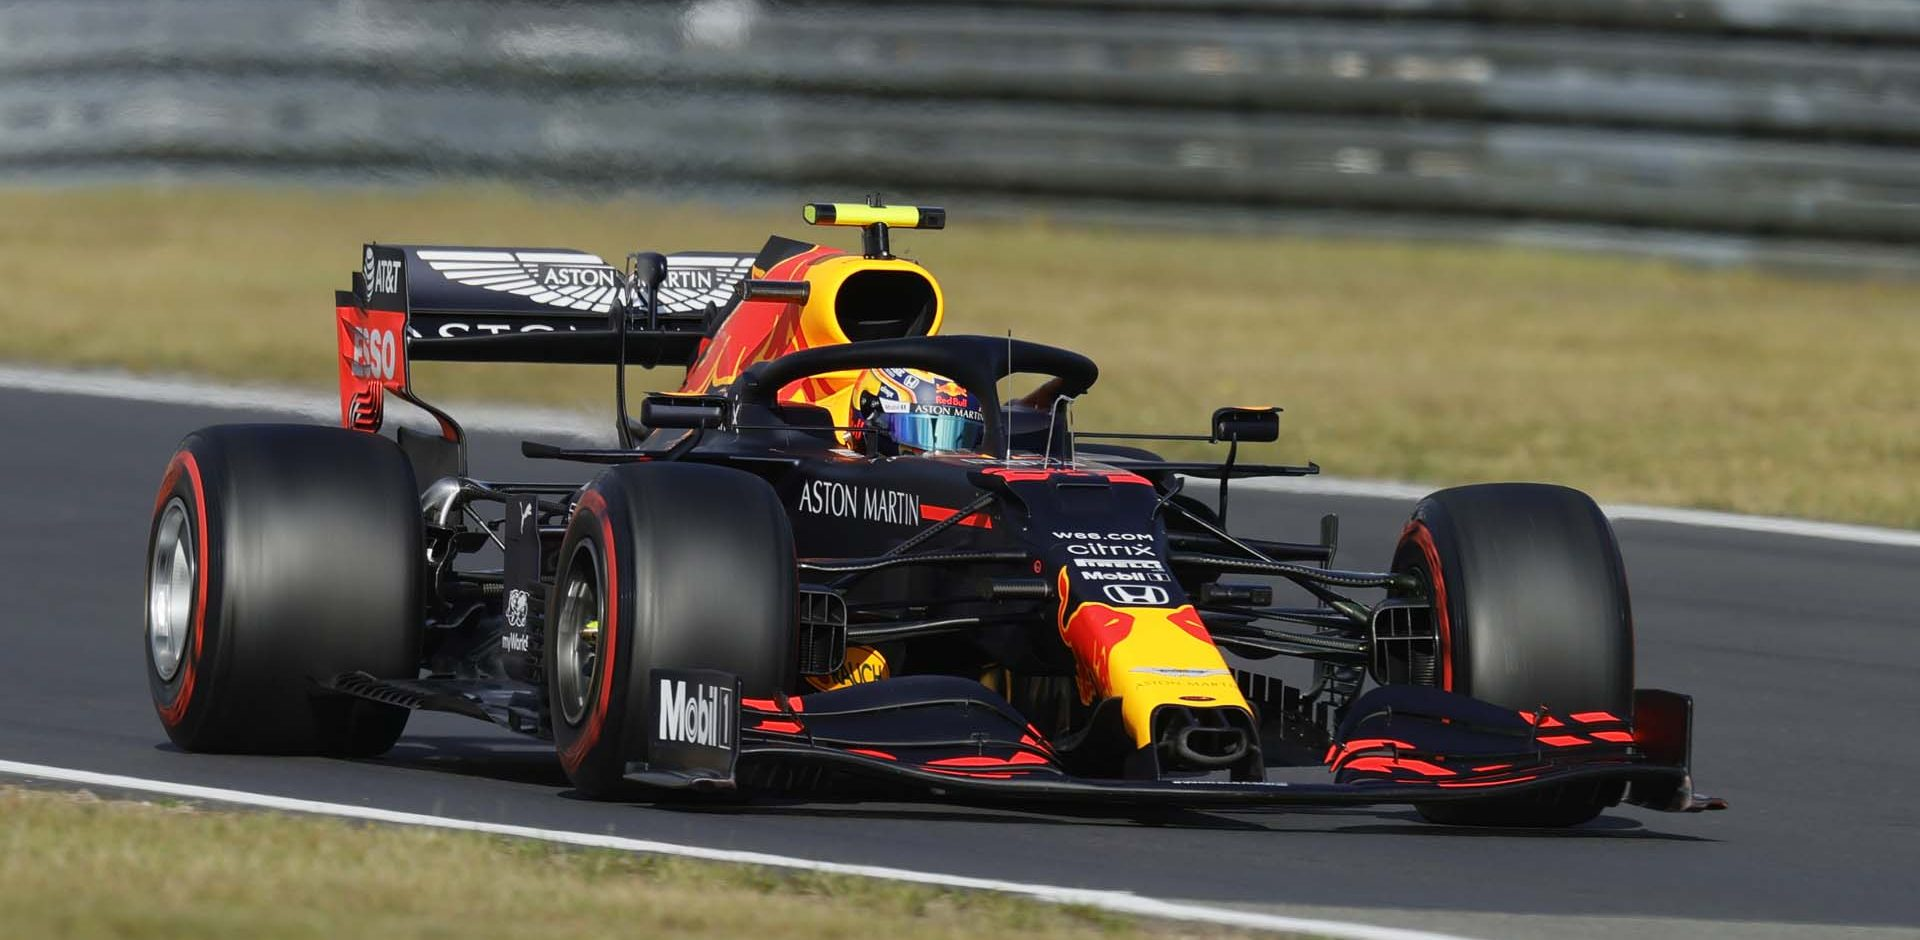 NUERBURG, GERMANY - OCTOBER 10: Alexander Albon of Thailand driving the (23) Aston Martin Red Bull Racing RB16 on track during qualifying ahead of the F1 Eifel Grand Prix at Nuerburgring on October 10, 2020 in Nuerburg, Germany. (Photo by Ronald Wittek - Pool/Getty Images)